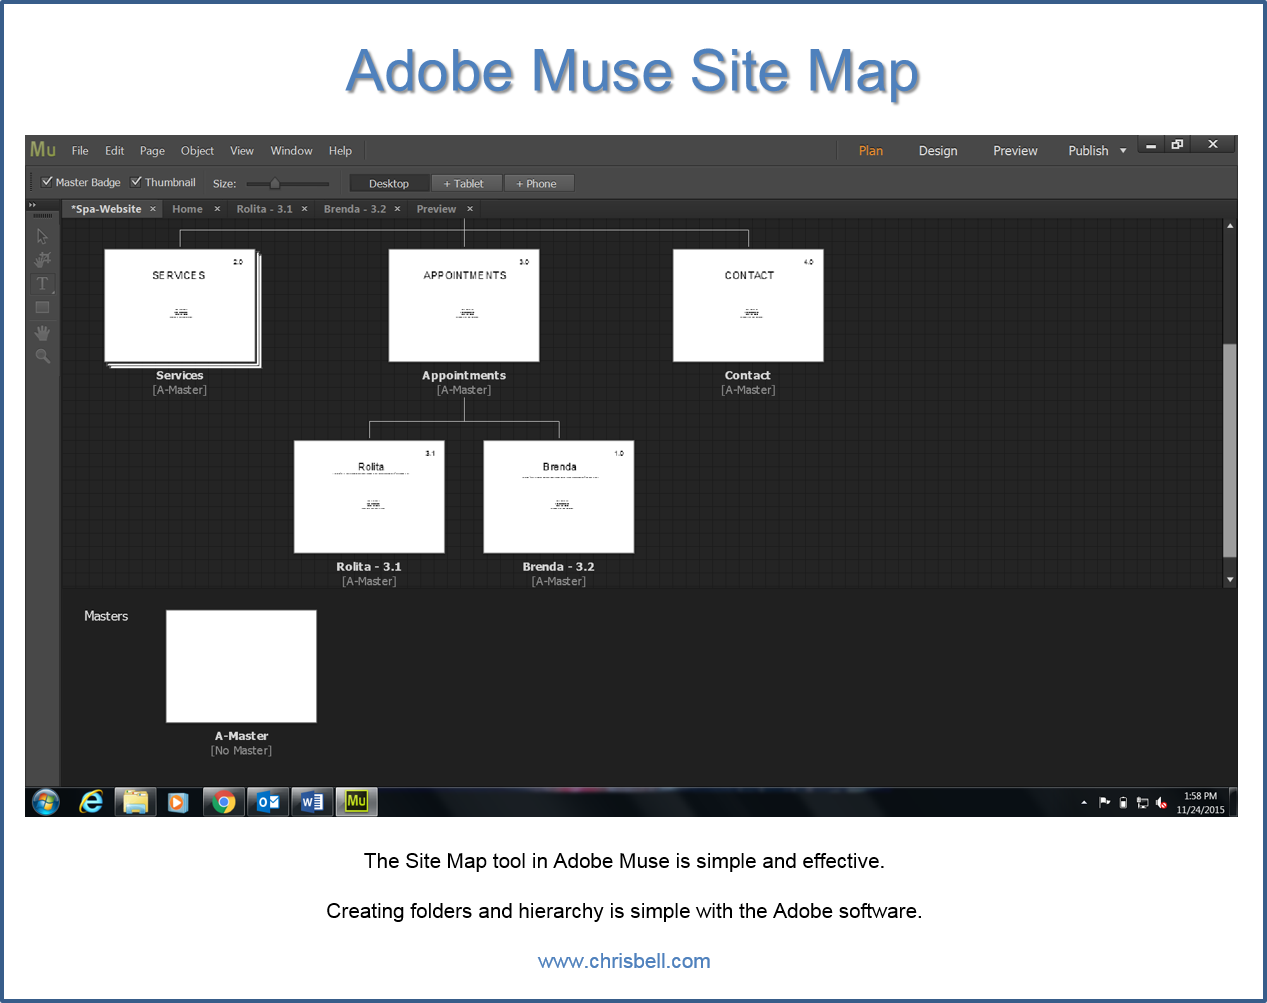 Spa Site in Adobe Muse